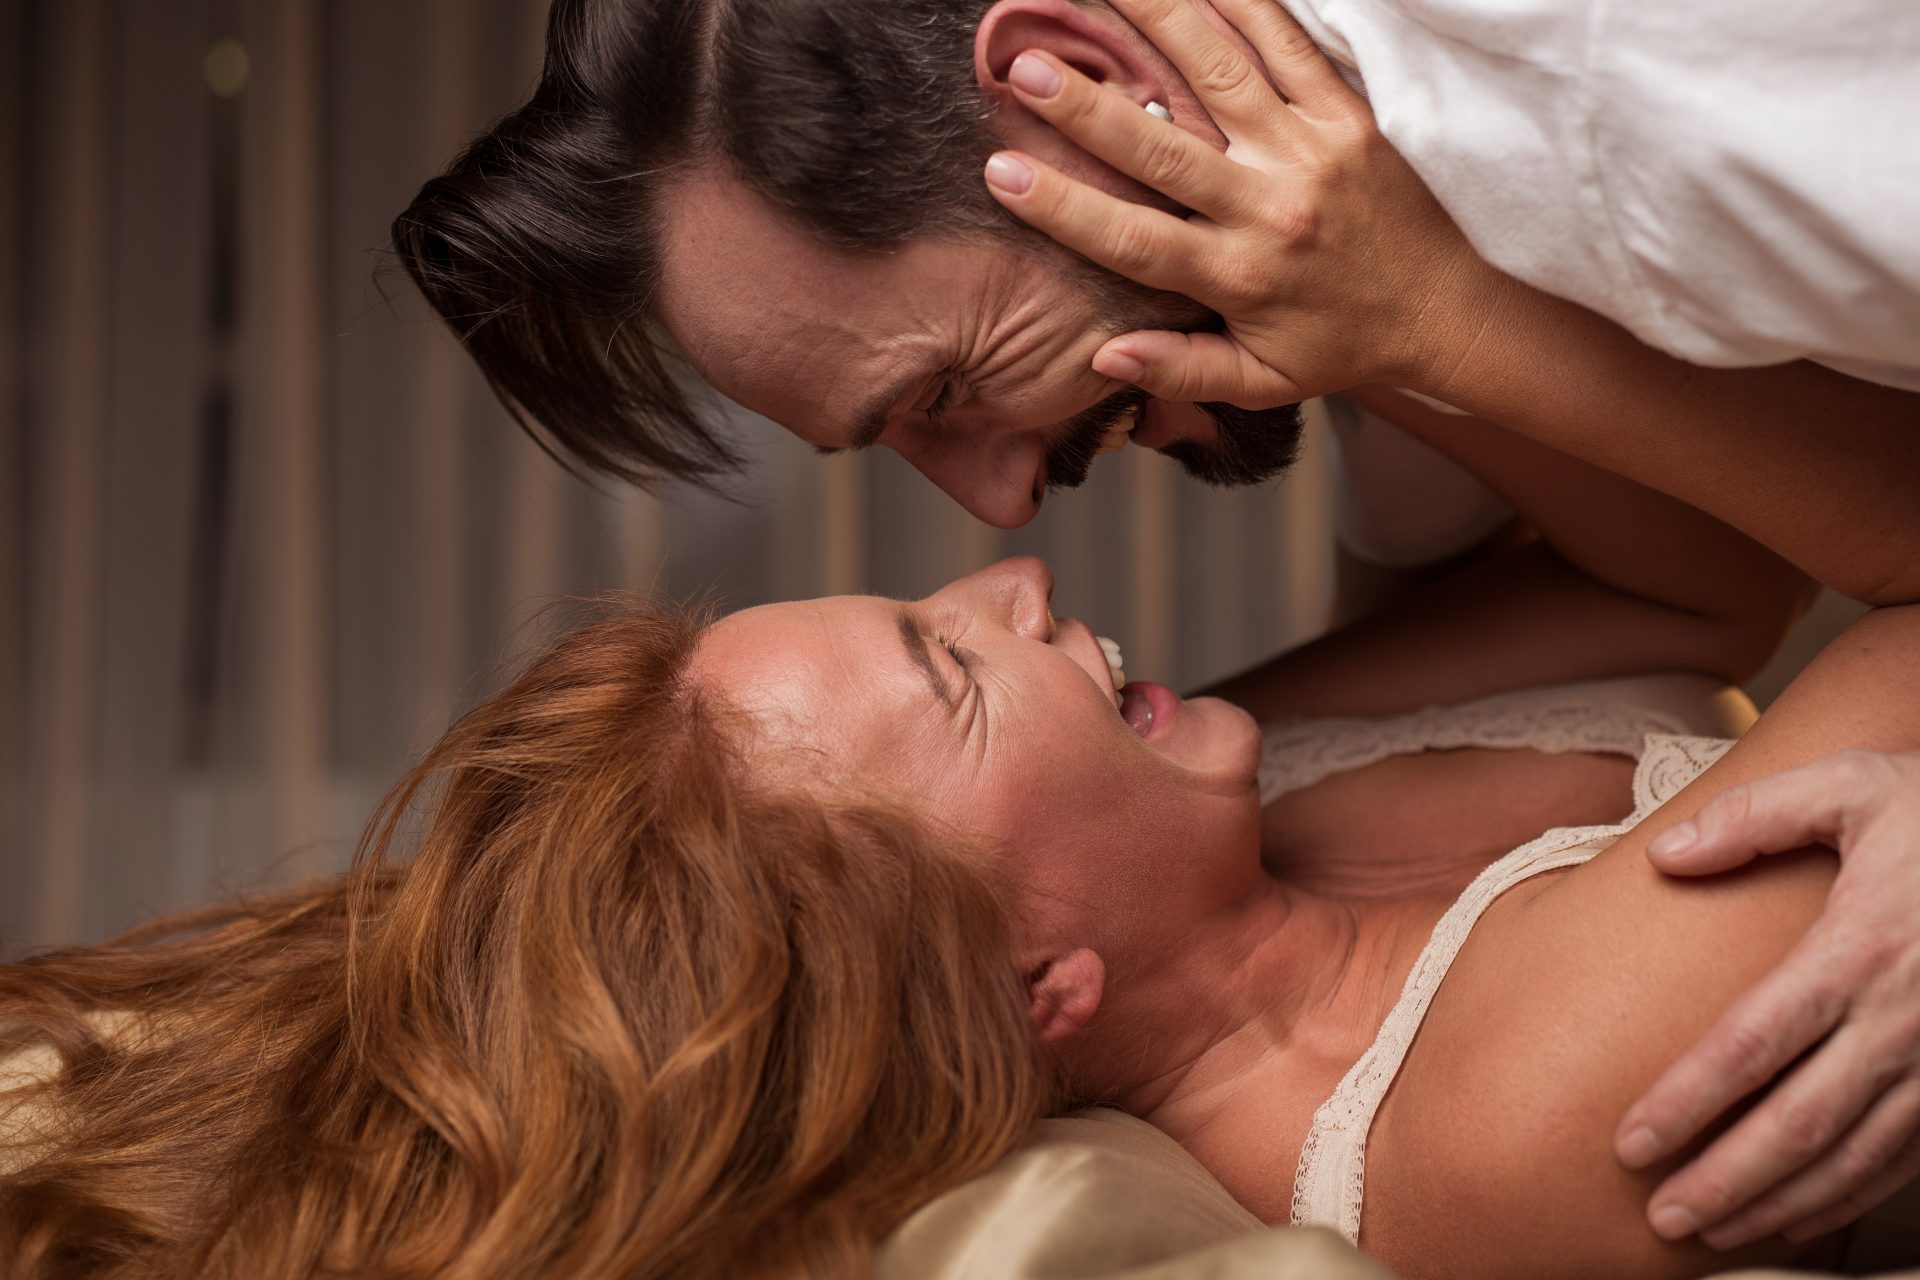 A middle-aged couple holding each other and laughing while lying in bed.